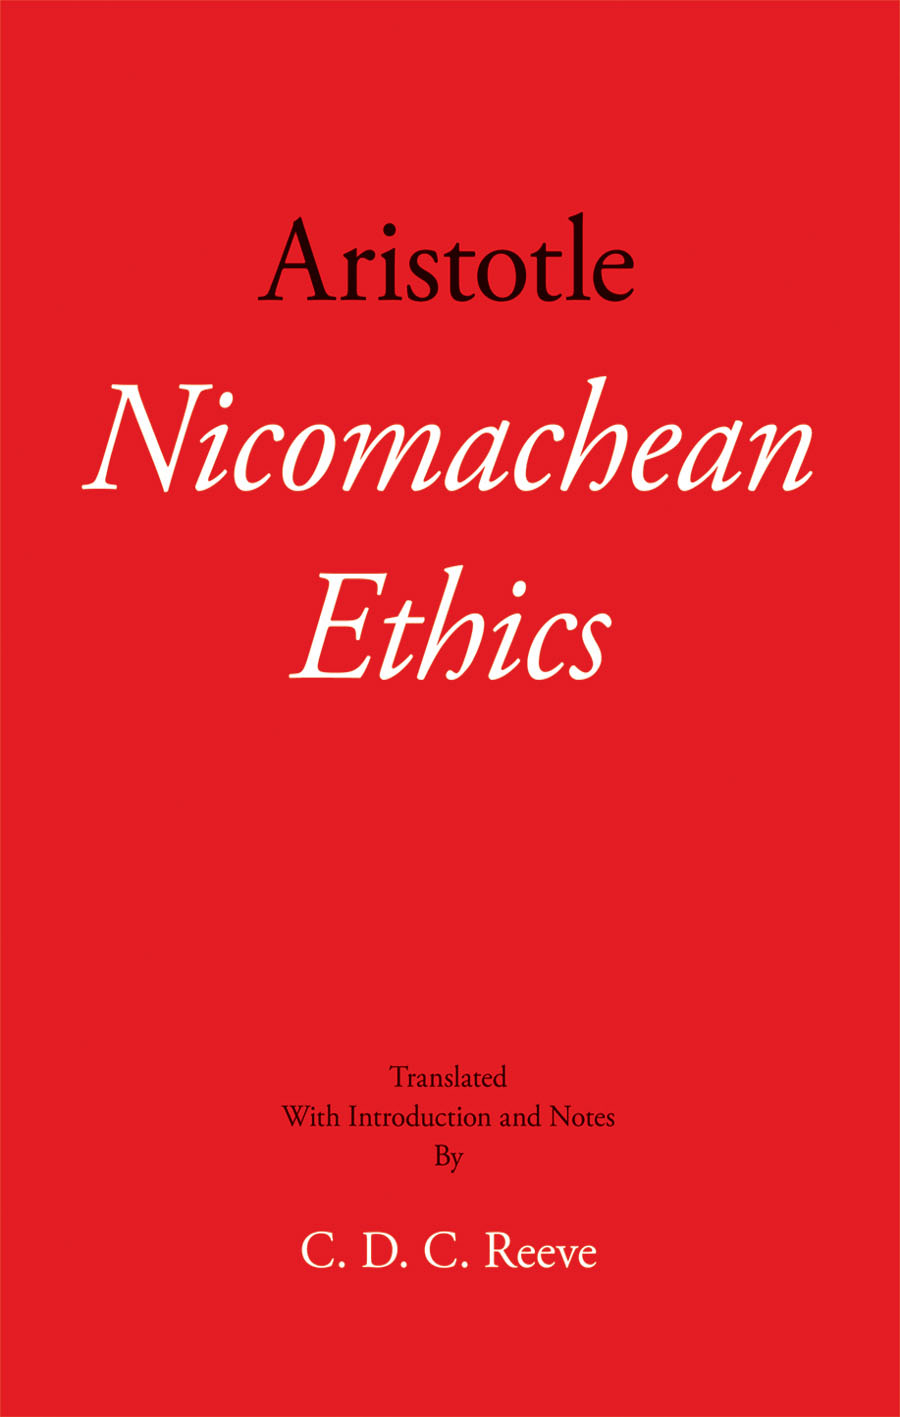 aristotle and nicomachean ethics Nicomachean ethics by aristotle 350 bc translated by w d ross book 1  chapter 1 [good as an end] chapter 2 [good for society] chapter 3 [knowledge  of.